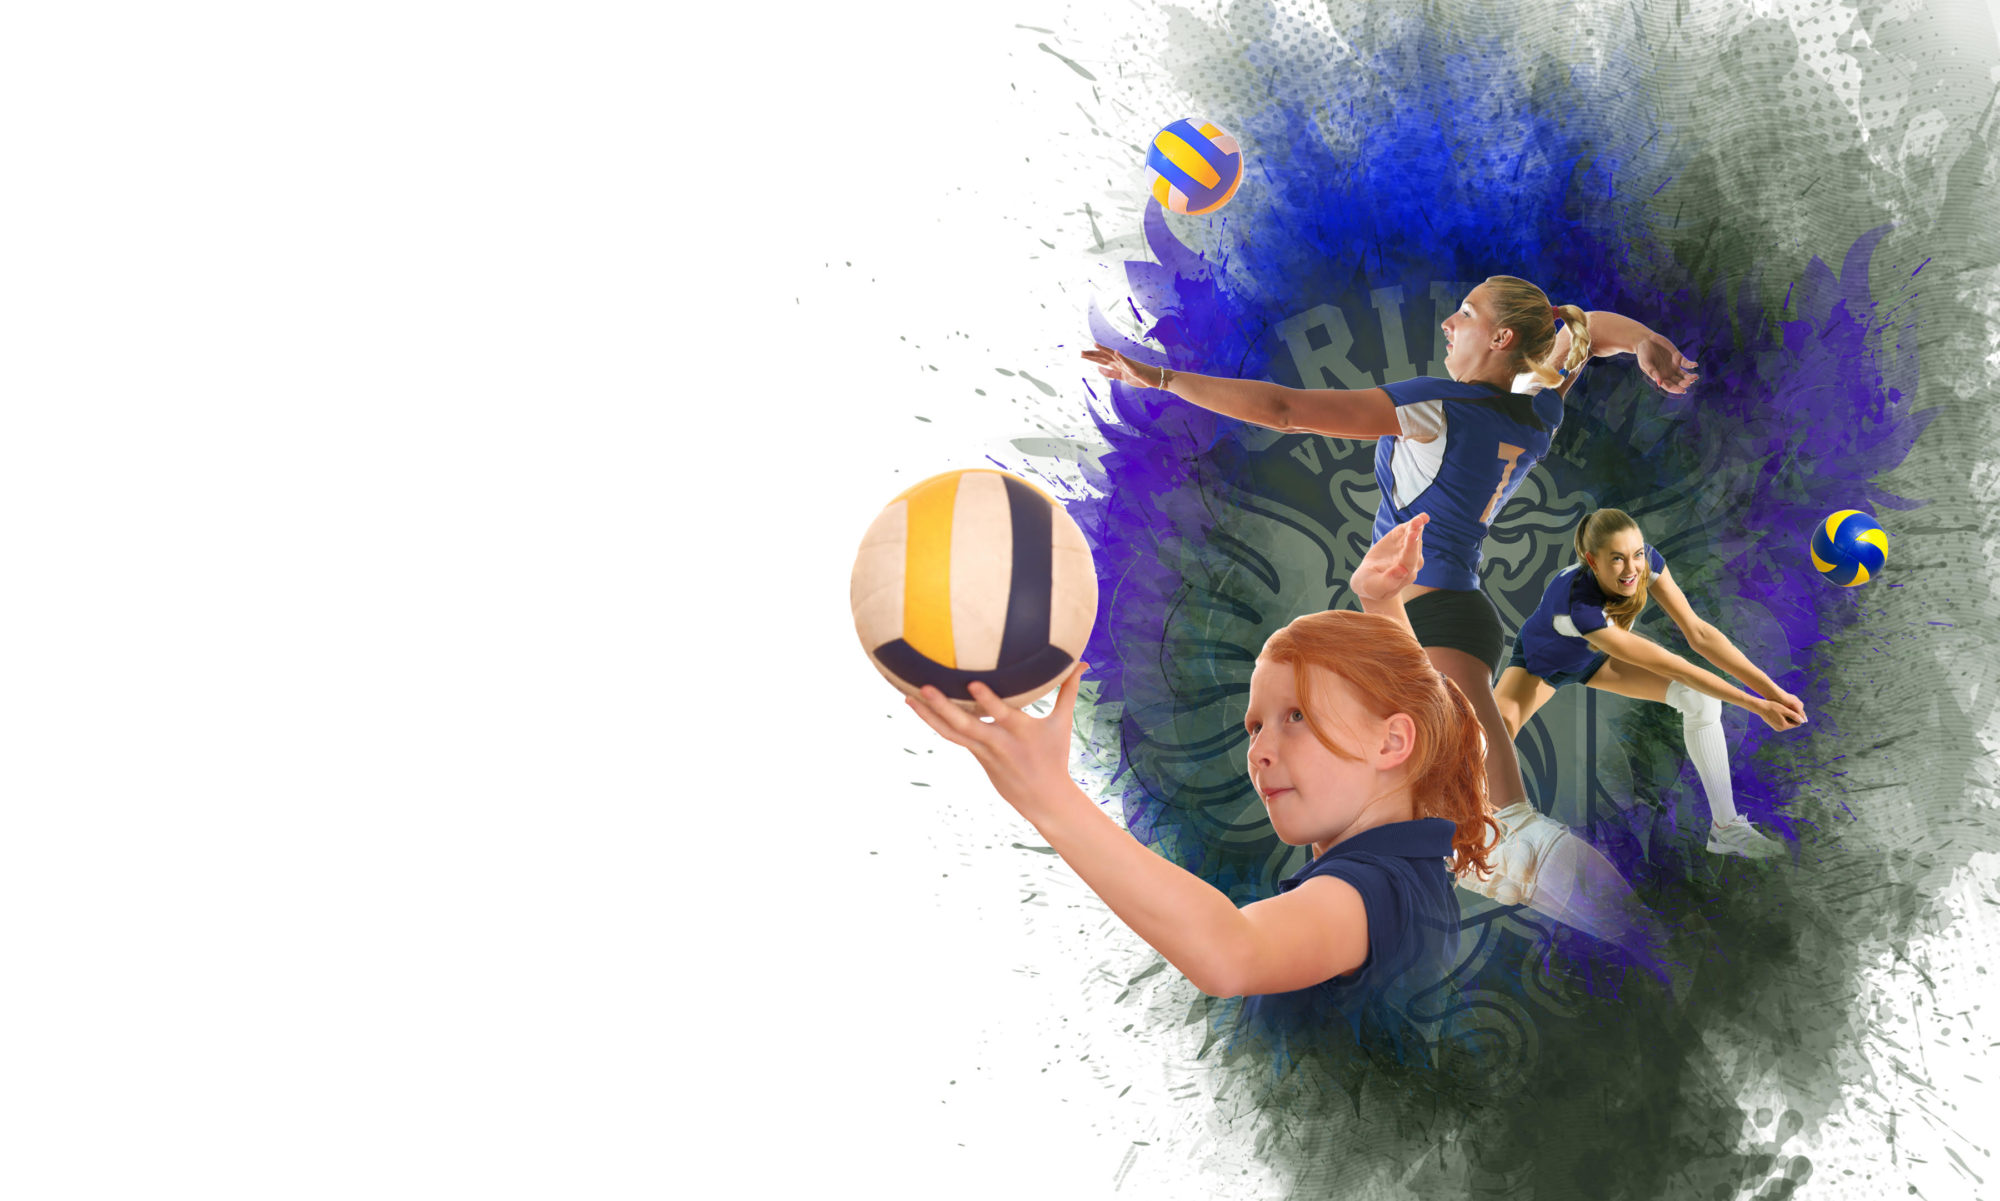 Griffin Volleyball Club